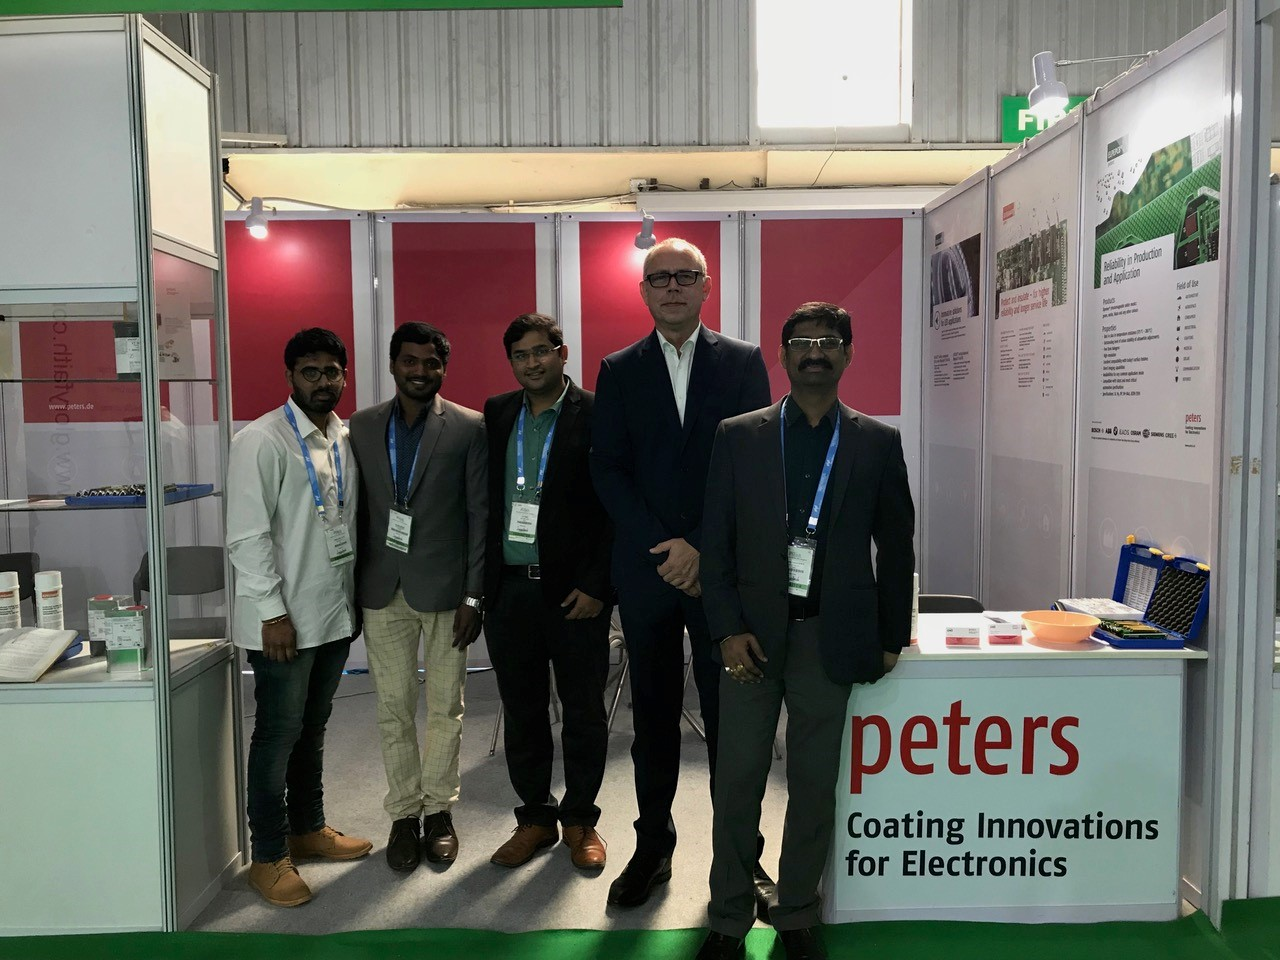 Productronica / Electronica India 2018 in Bangalore